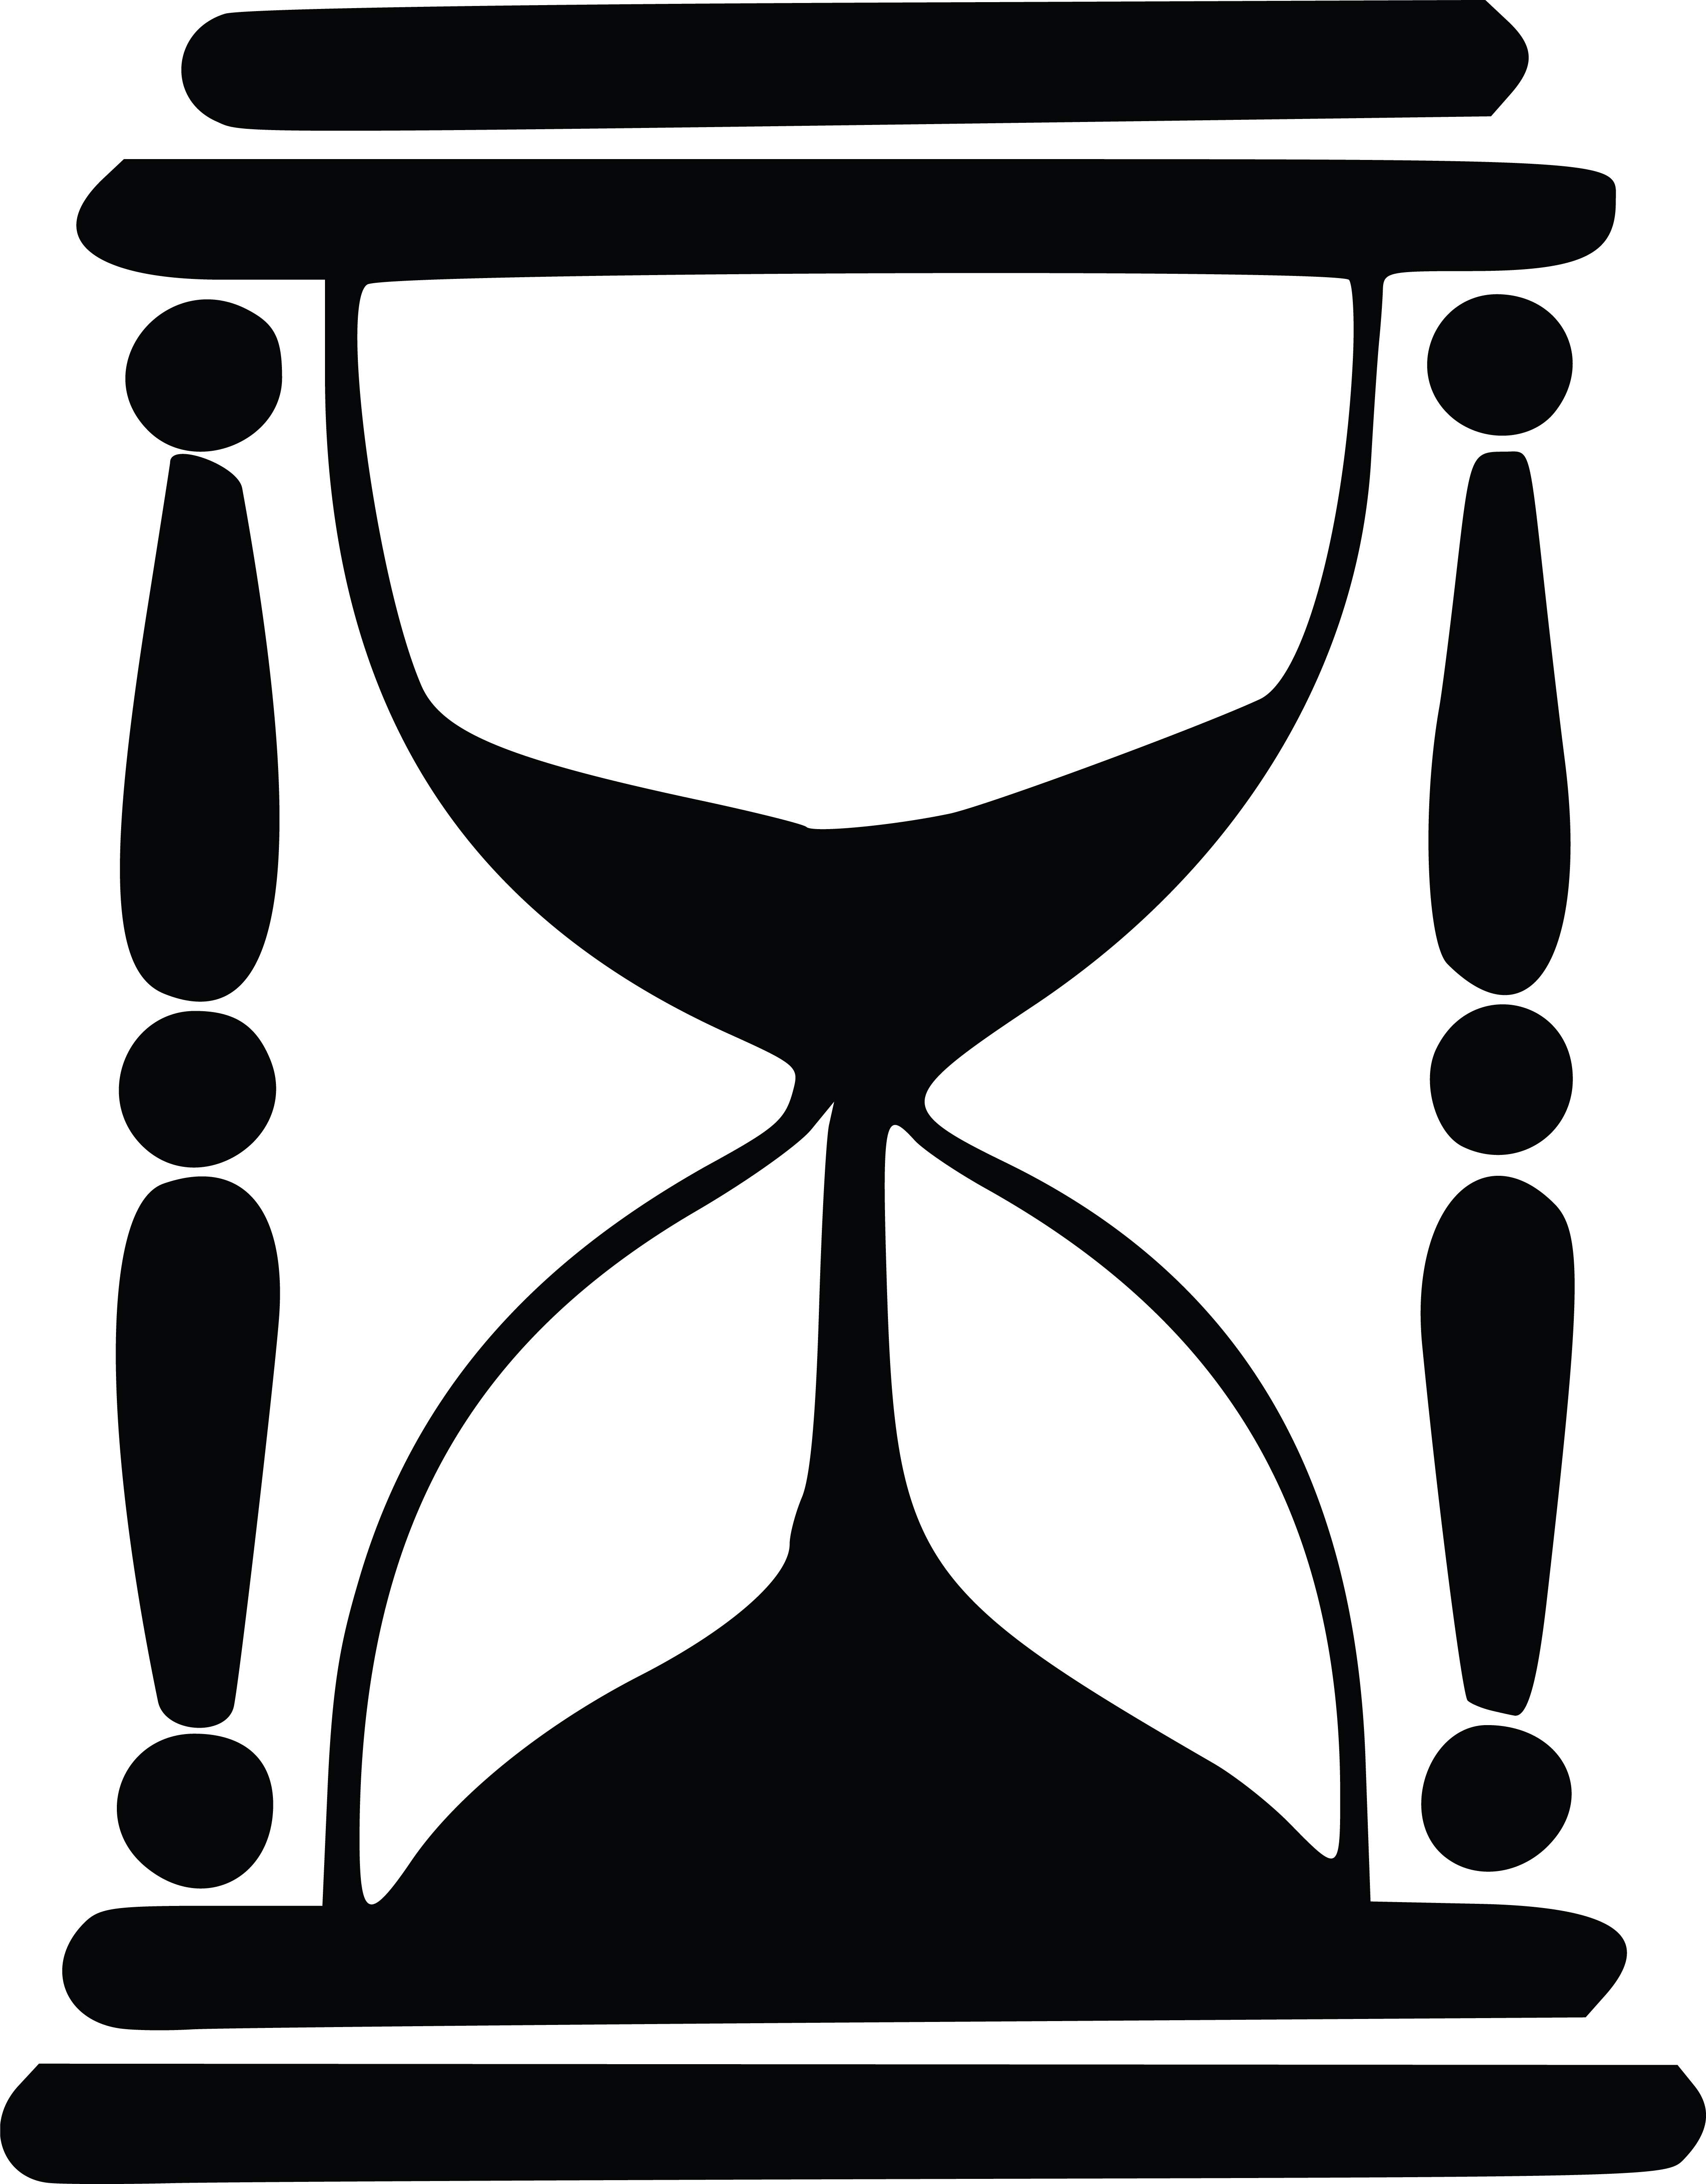 Hourglass clipart table watch. Free download best on